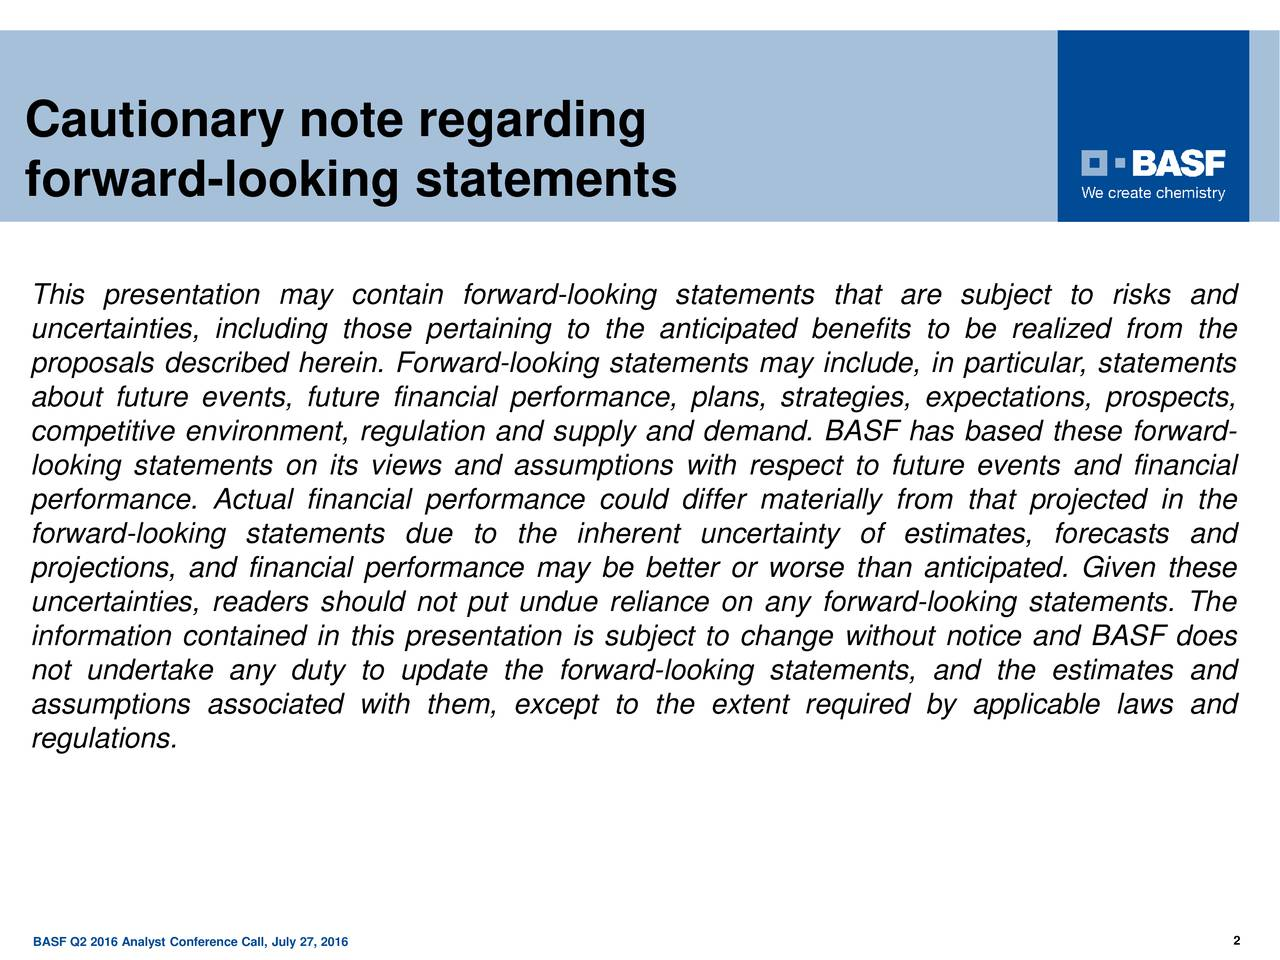 Cautionary note regarding forward-looking statements This presentation may contain forward-looking statements that are subject to risks and uncertainties, including those pertaining to the anticipated benefits to be realized from the proposals described herein. Forward-looking statements may include, in particular, statements about future events, future financial performance, plans, strategies, expectations, prospects, competitive environment, regulation and supply and demand. BASF has based these forward- looking statements on its views and assumptions with respect to future events and financial performance. Actual financial performance could differ materially from that projected in the forward-looking statements due to the inherent uncertainty of estimates, forecasts and projections, and financial performance may be better or worse than anticipated. Given these uncertainties, readers should not put undue reliance on any forward-looking statements. The information contained in this presentation is subject to change without notice and BASF does not undertake any duty to update the forward-looking statements, and the estimates and assumptions associated with them, except to the extent required by applicable laws and regulations. BASF Q2 2016 Analyst Conference Call, July 27, 2016 2